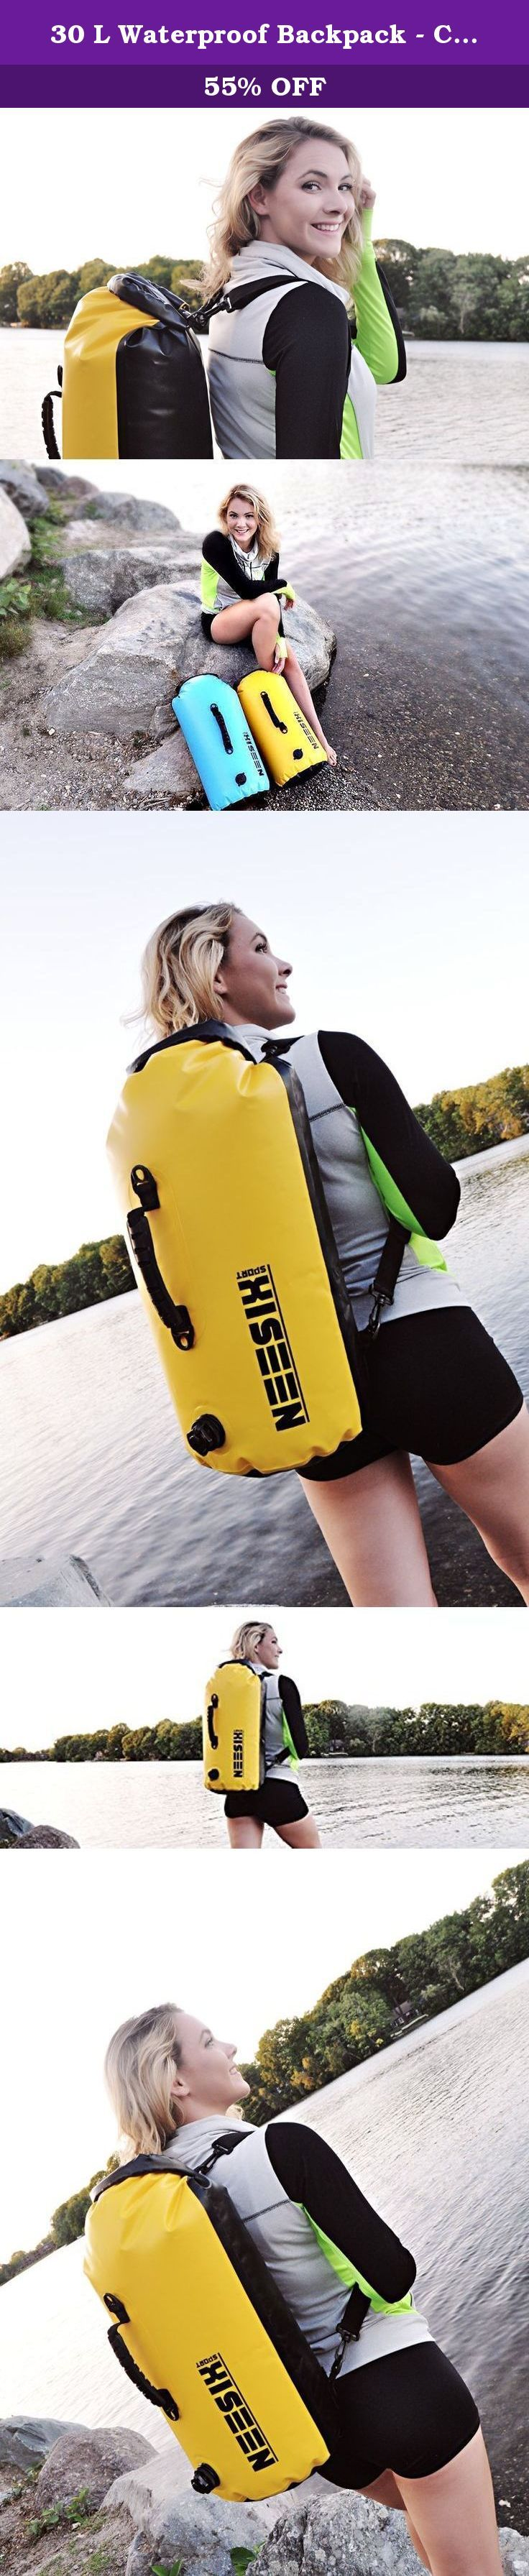 30 L Waterproof Backpack - Compression Backpack for Canoeing, Camping, Travelling, Kayaking, Boating, Hiking. Features - 100% Waterproof Main Compartment. - 30 Liters Storage Capacity. - Two Way Valve for Inflation or Compression. - Made of High Quality Marine Grade Waterproof Vinyl. Lifetime Guarantee - The manufacturer, NEESIX offers a Lifetime Guarantee. If you are not completely satisfied with the bag, return it for a free replacement or your money back. The warranty is not applicable…